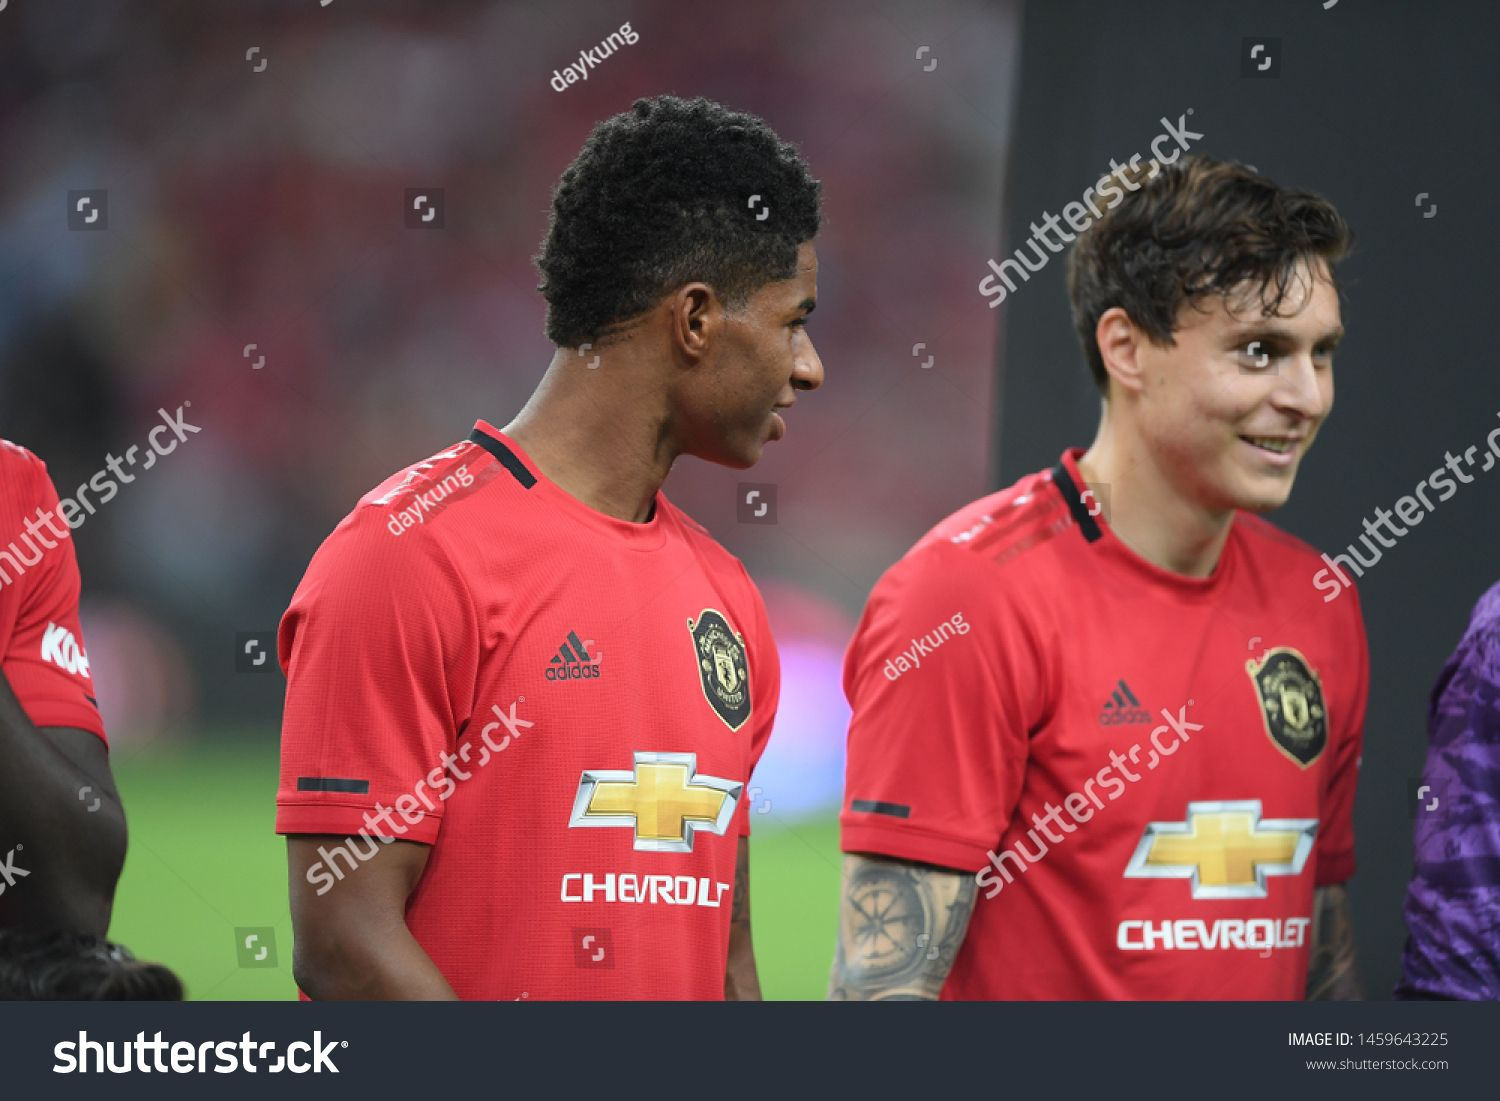 Kallang Singapore 20jul2019 Marcus Rashford 10 Player Of Manchester United In Action During Icc2019 Between Manches In 2020 Marcus Rashford Manchester United The Unit